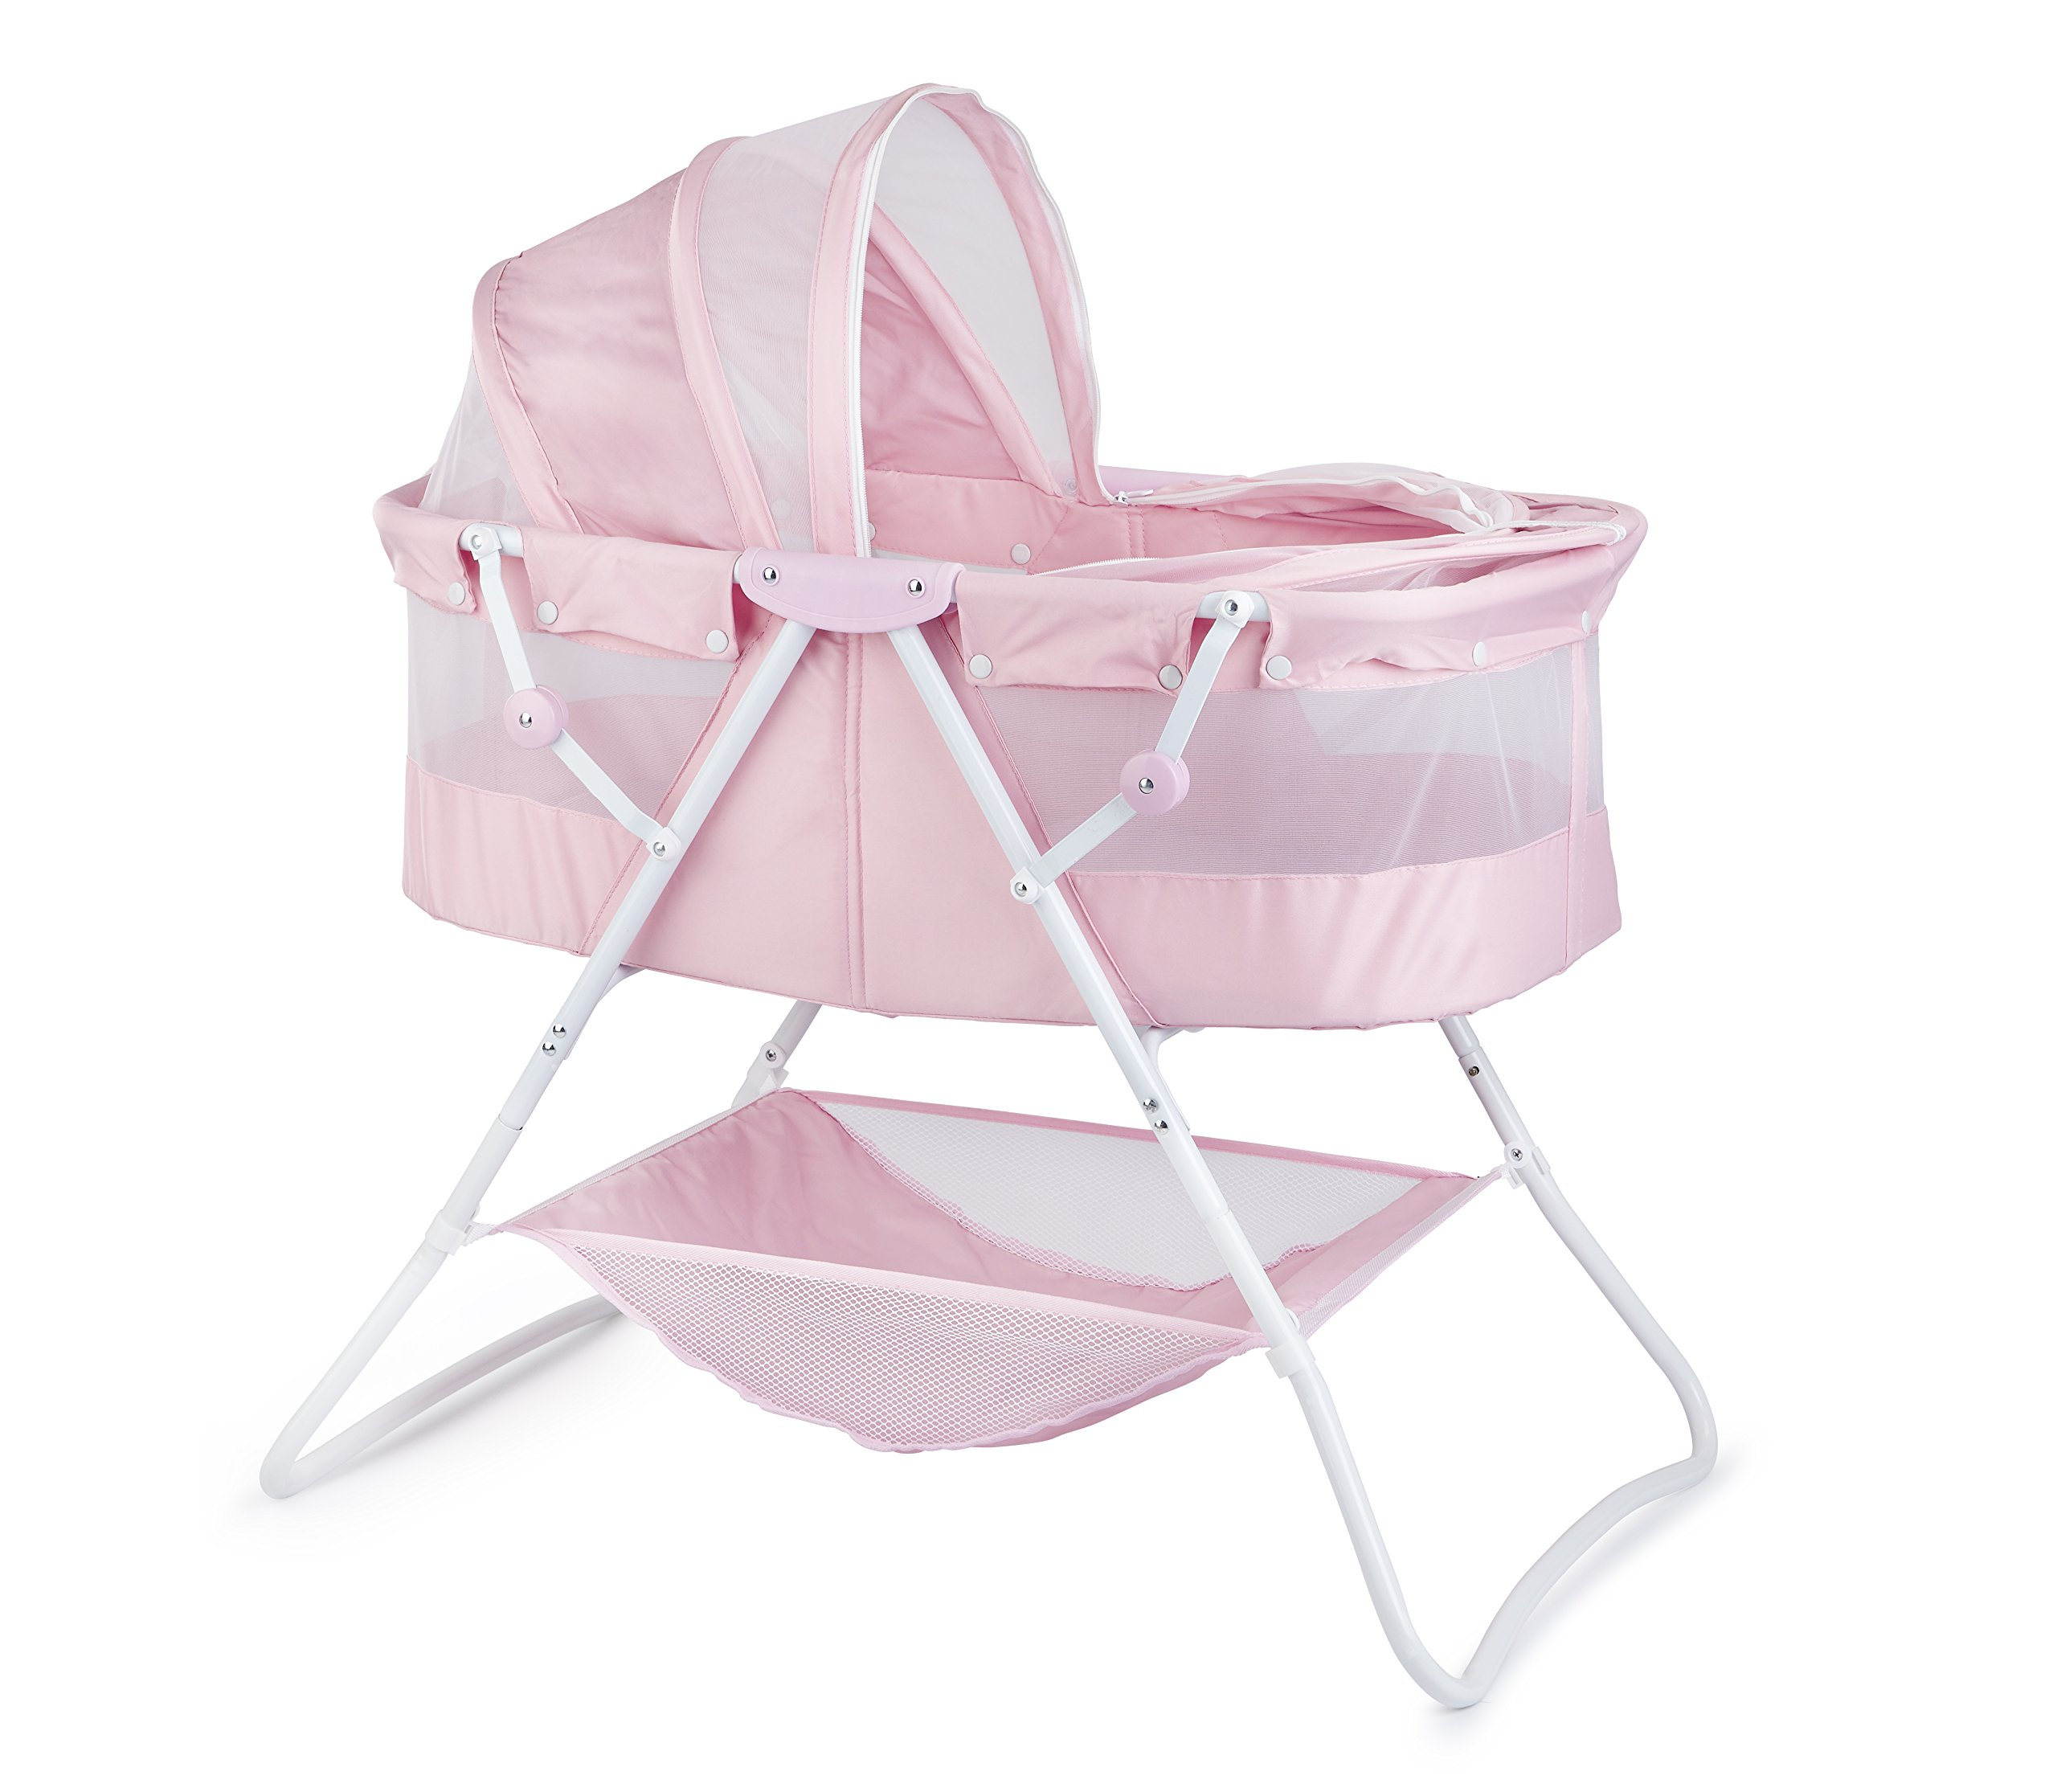 Big Oshi Emma Newborn Baby Bassinet - Portable Co Sleeper Bassinet for Boys or Girls - Perfect for Bedside, Indoors, or Outdoors - Lightweight for Travel - Canopy Netting Cover - Wood Bed Base, Pink